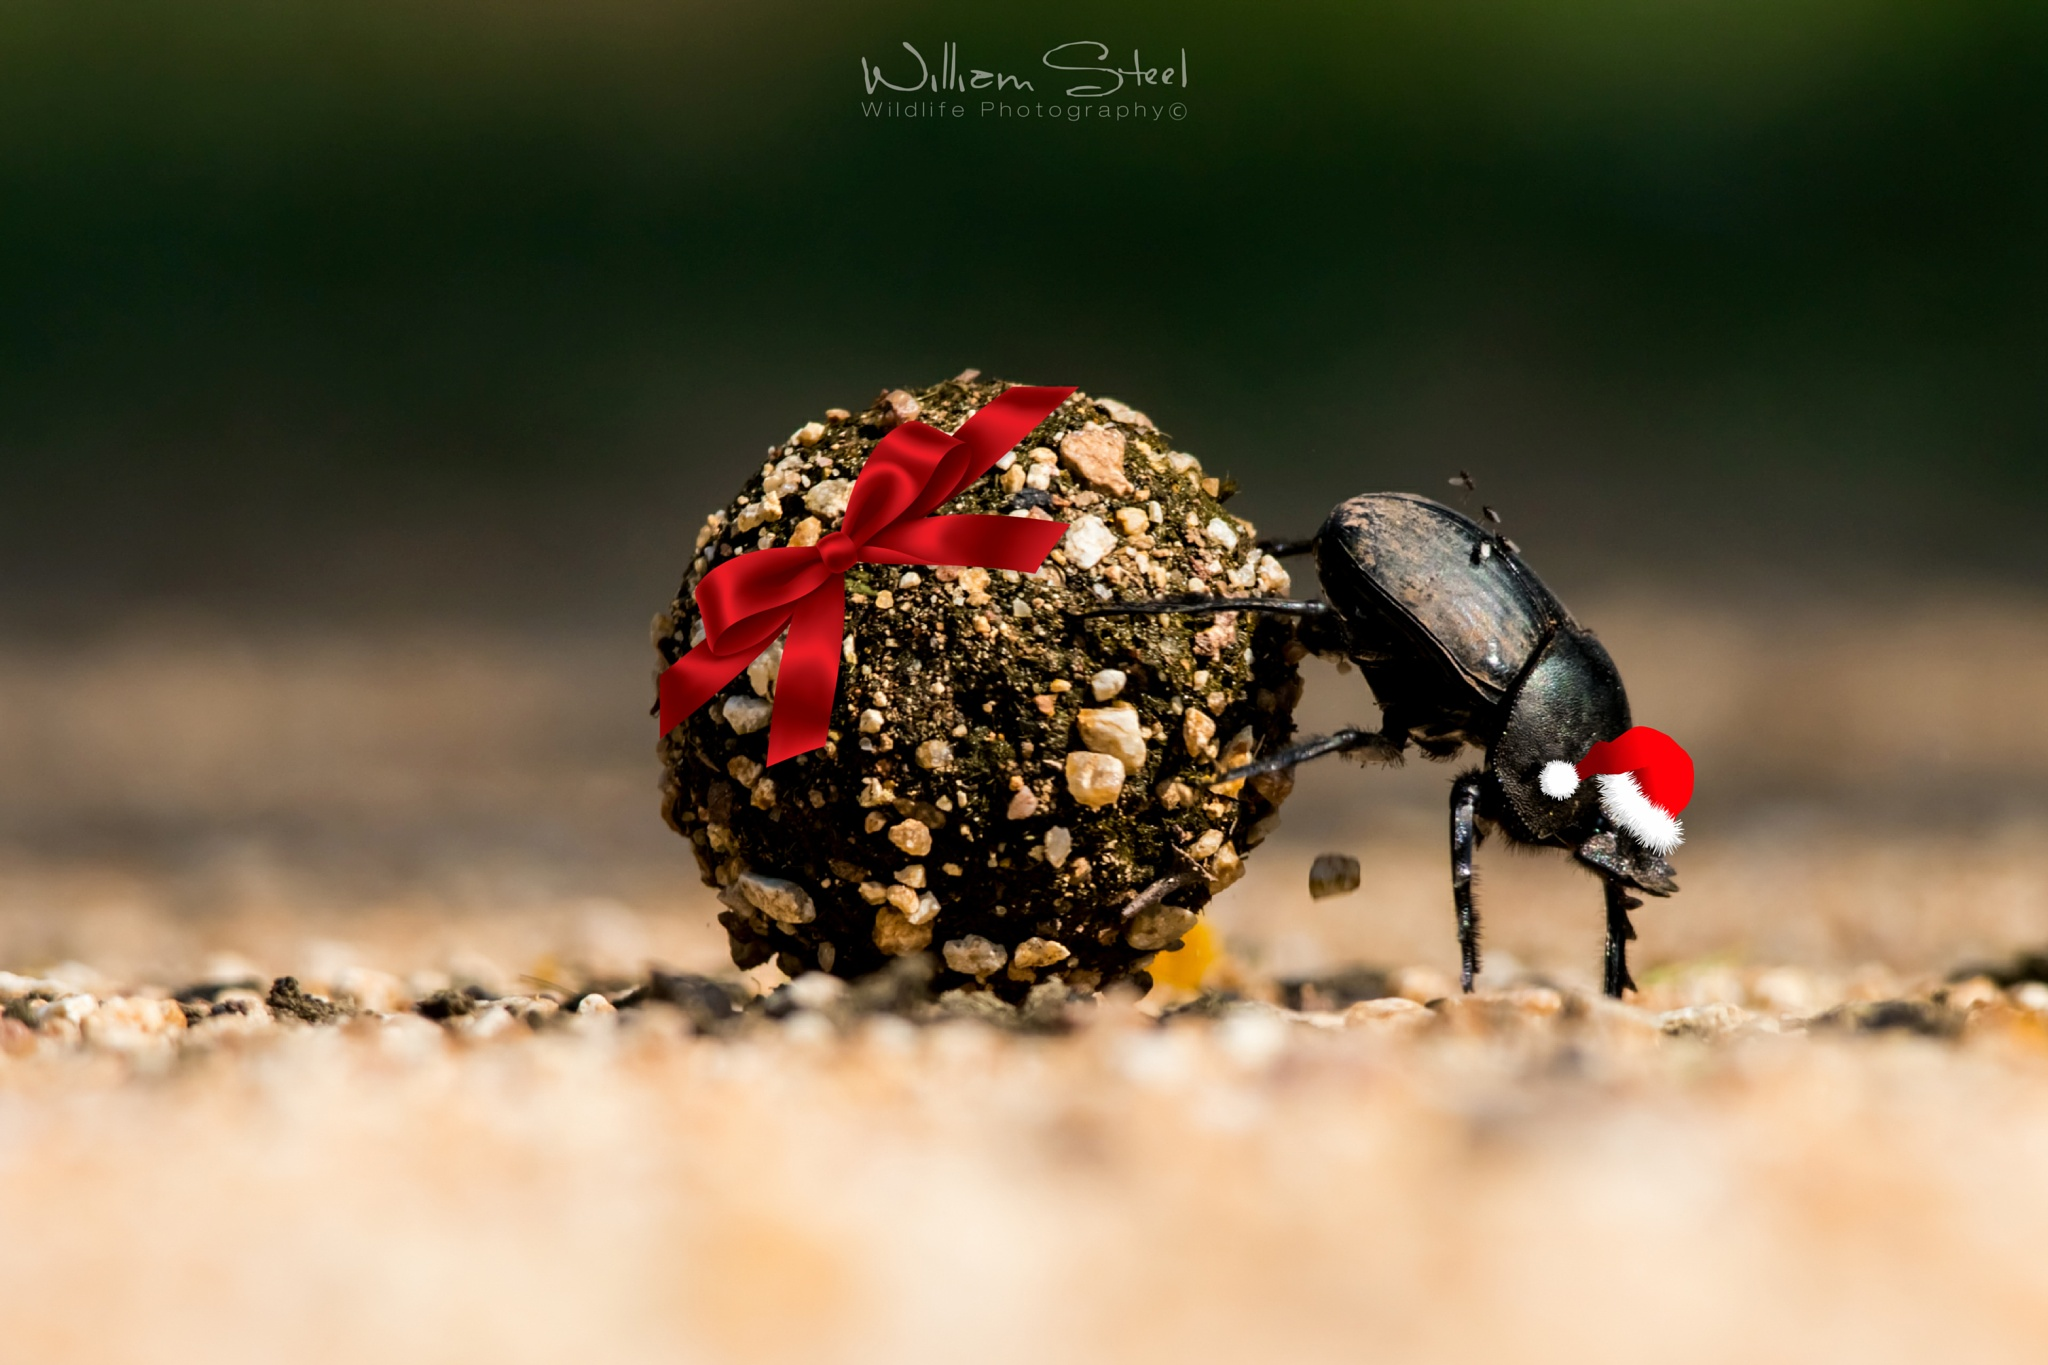 Christmas Dung Beetle  by William Steel